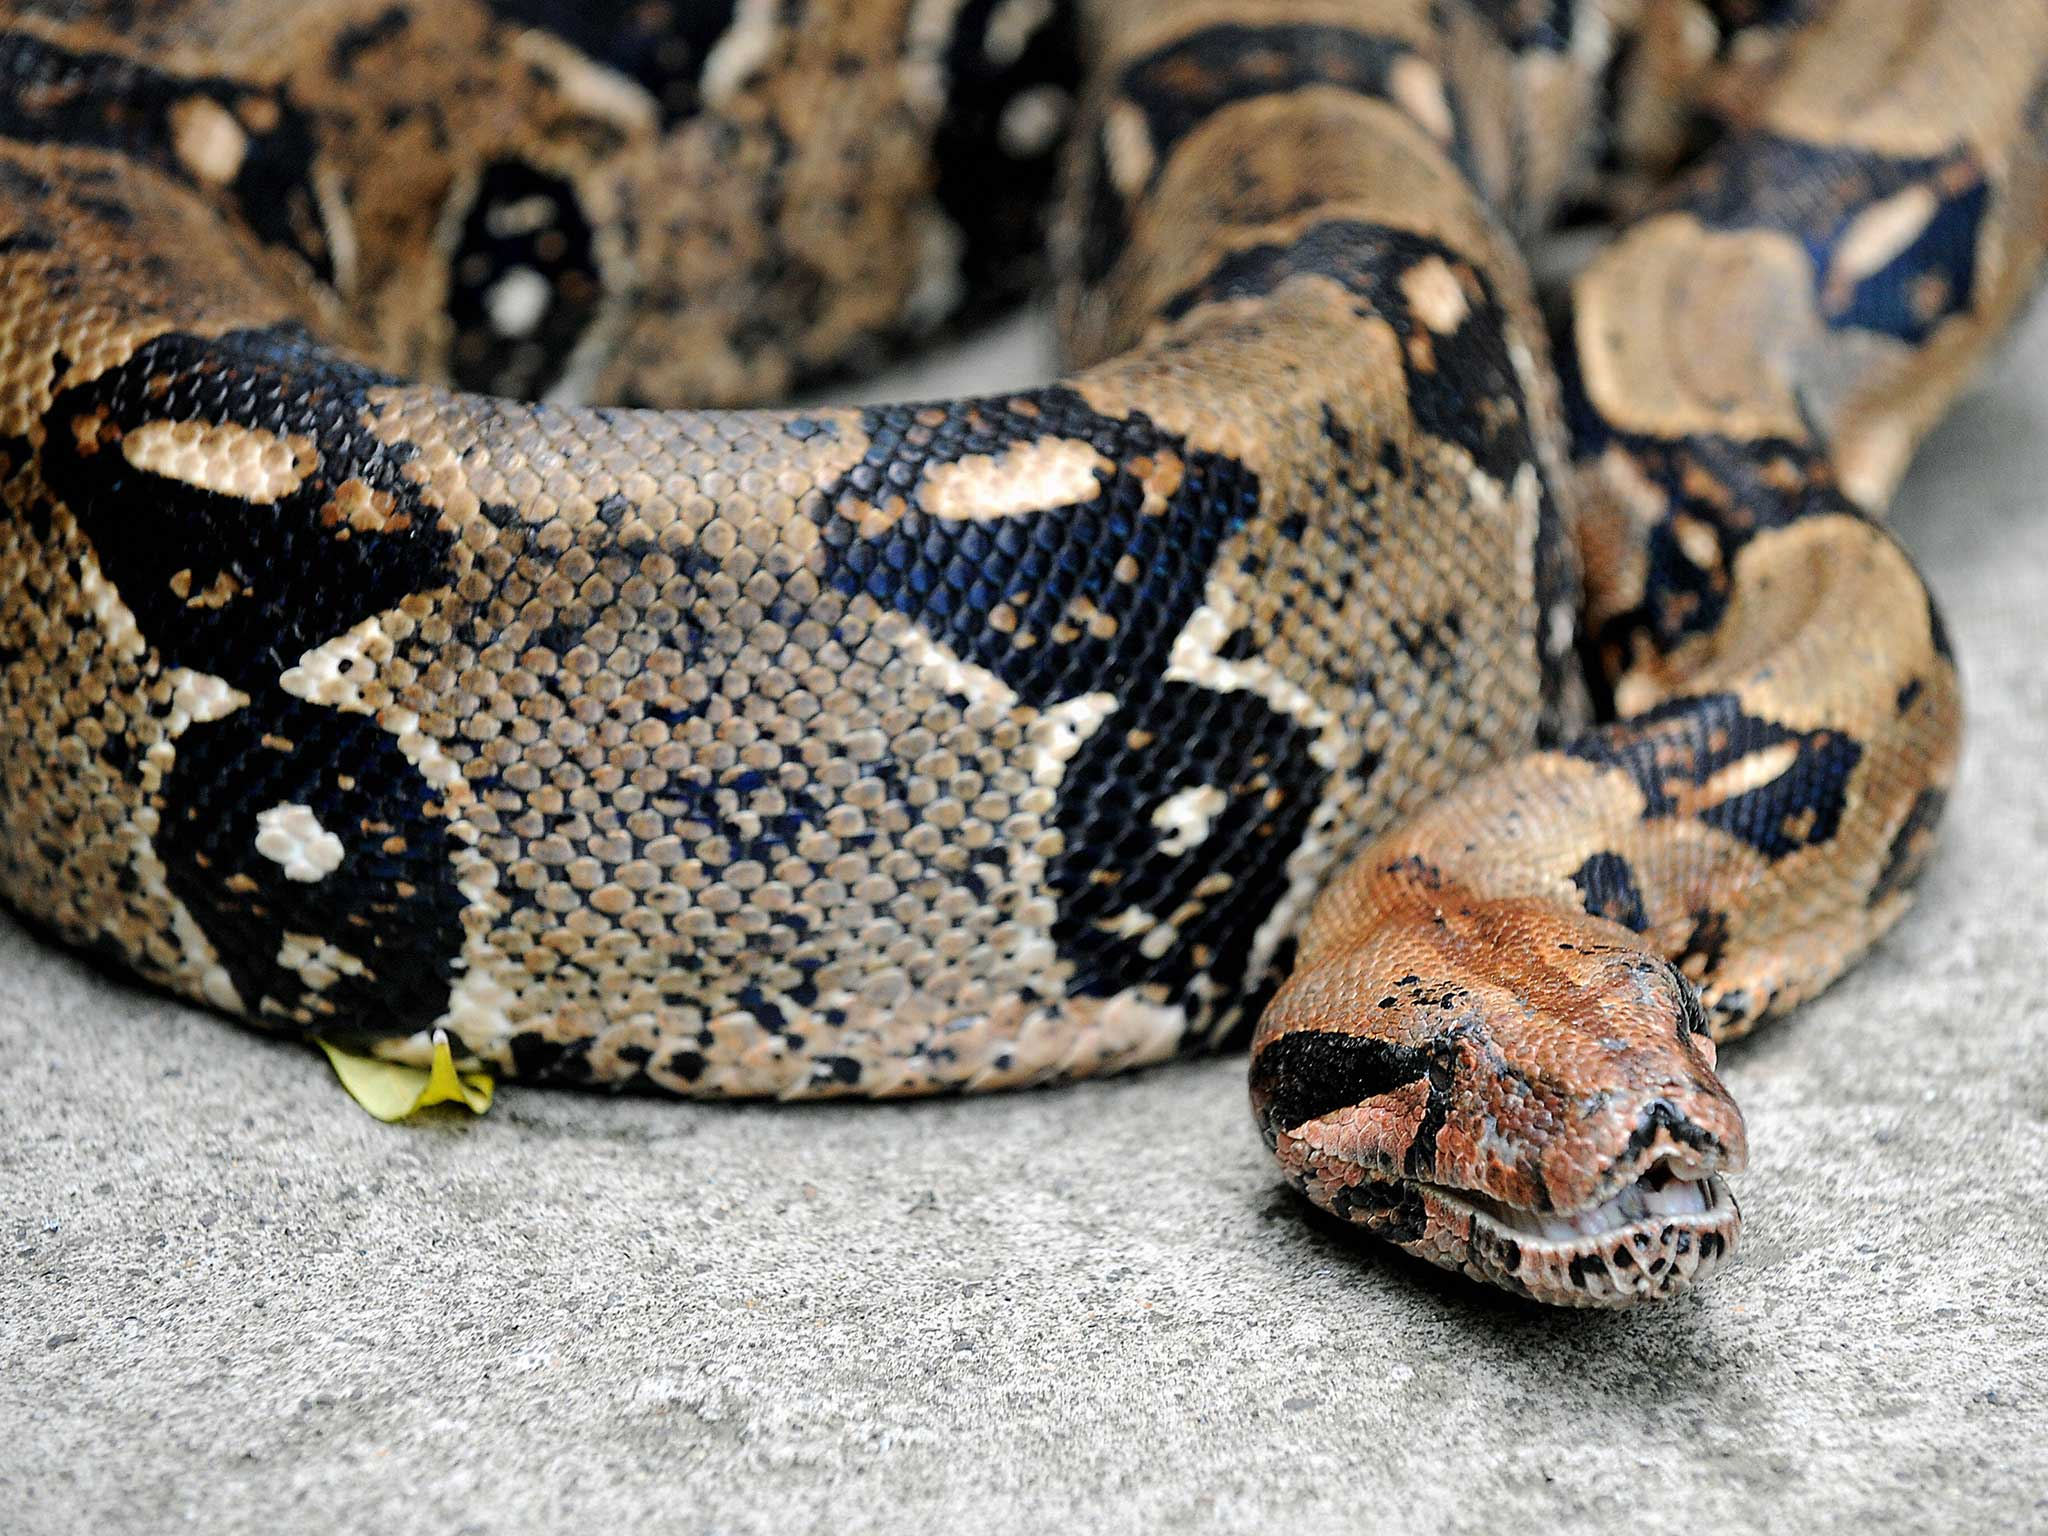 More than 600 people sign up to Florida's python-hunting challenge